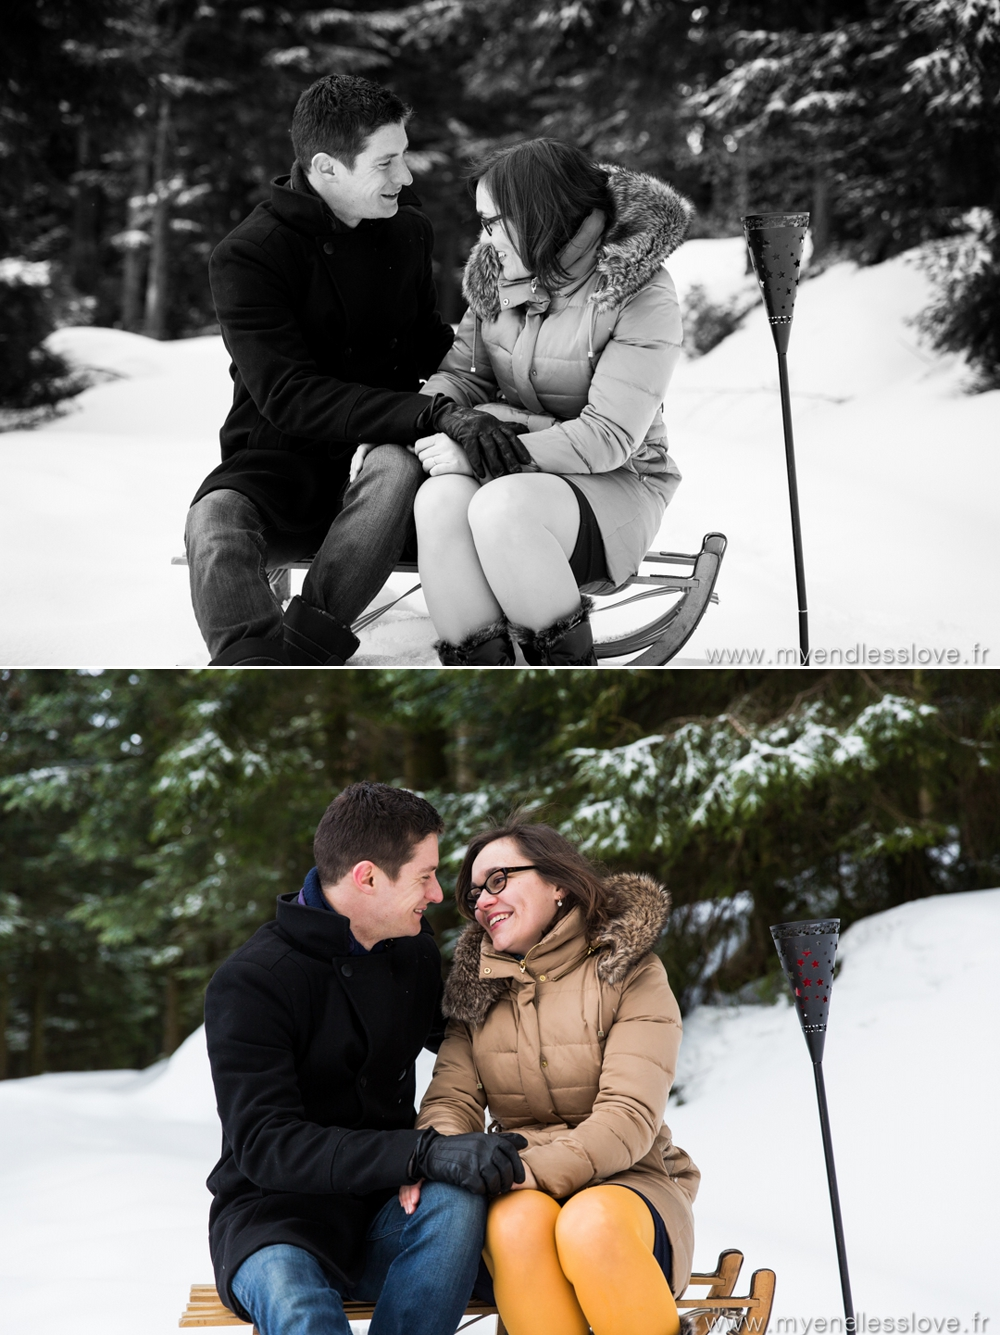 Photographe couple gambsheim haguenau my endless love photographie reichhart